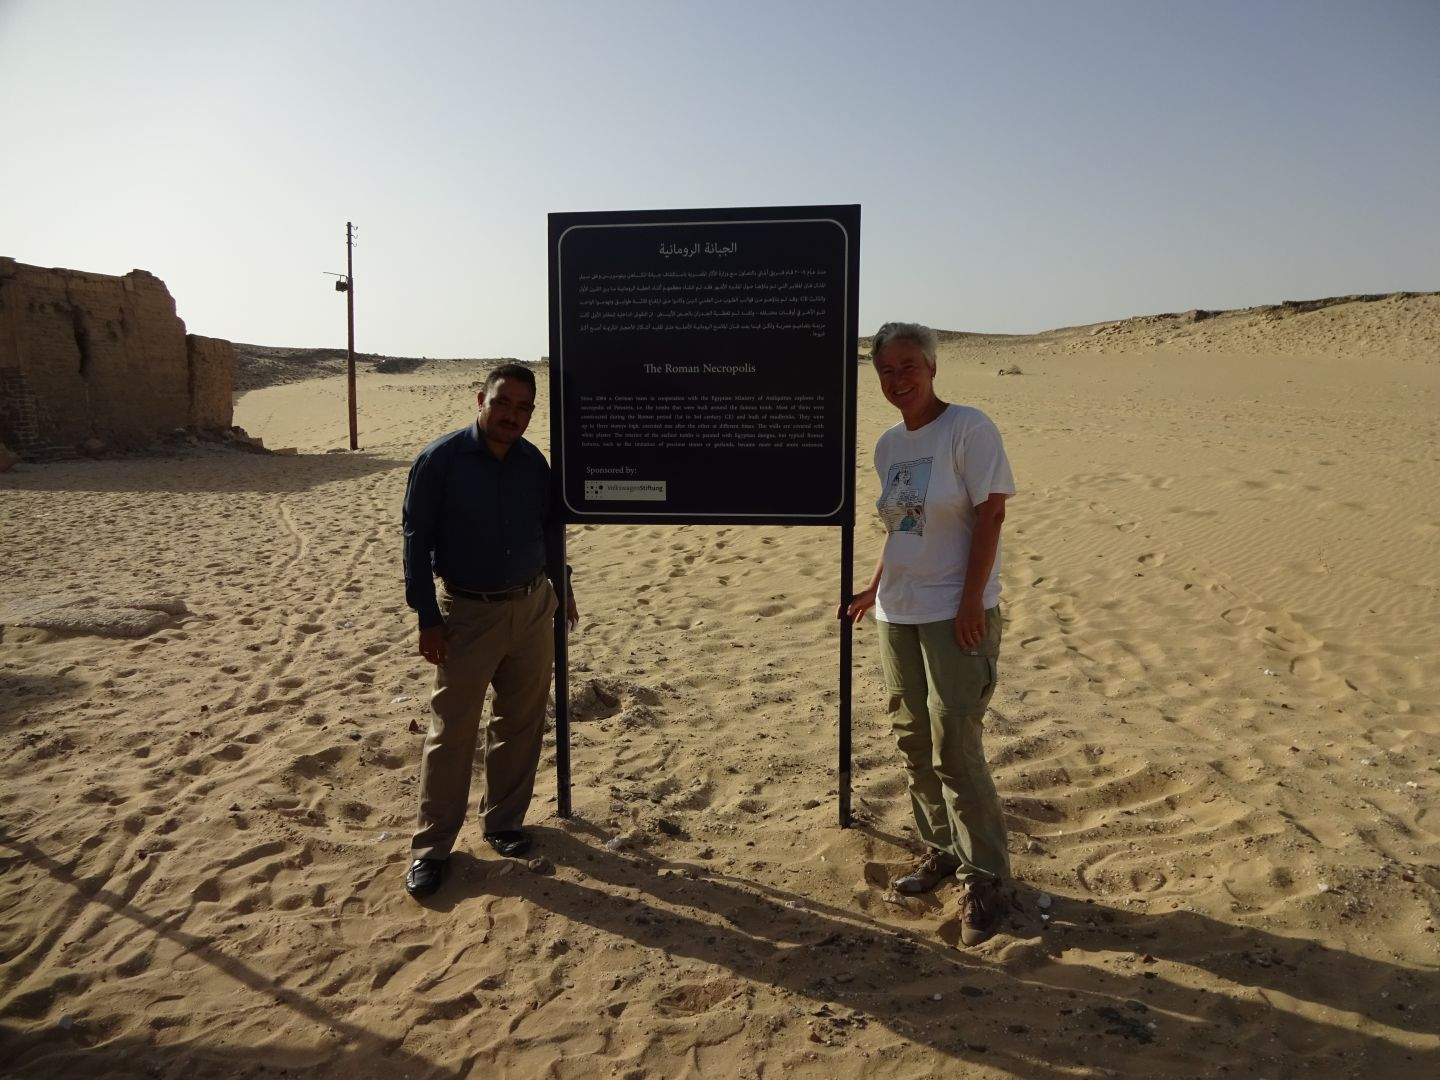 Sayed Abdel Malik and Katja Lembke with the new sign of the Roman necropolis